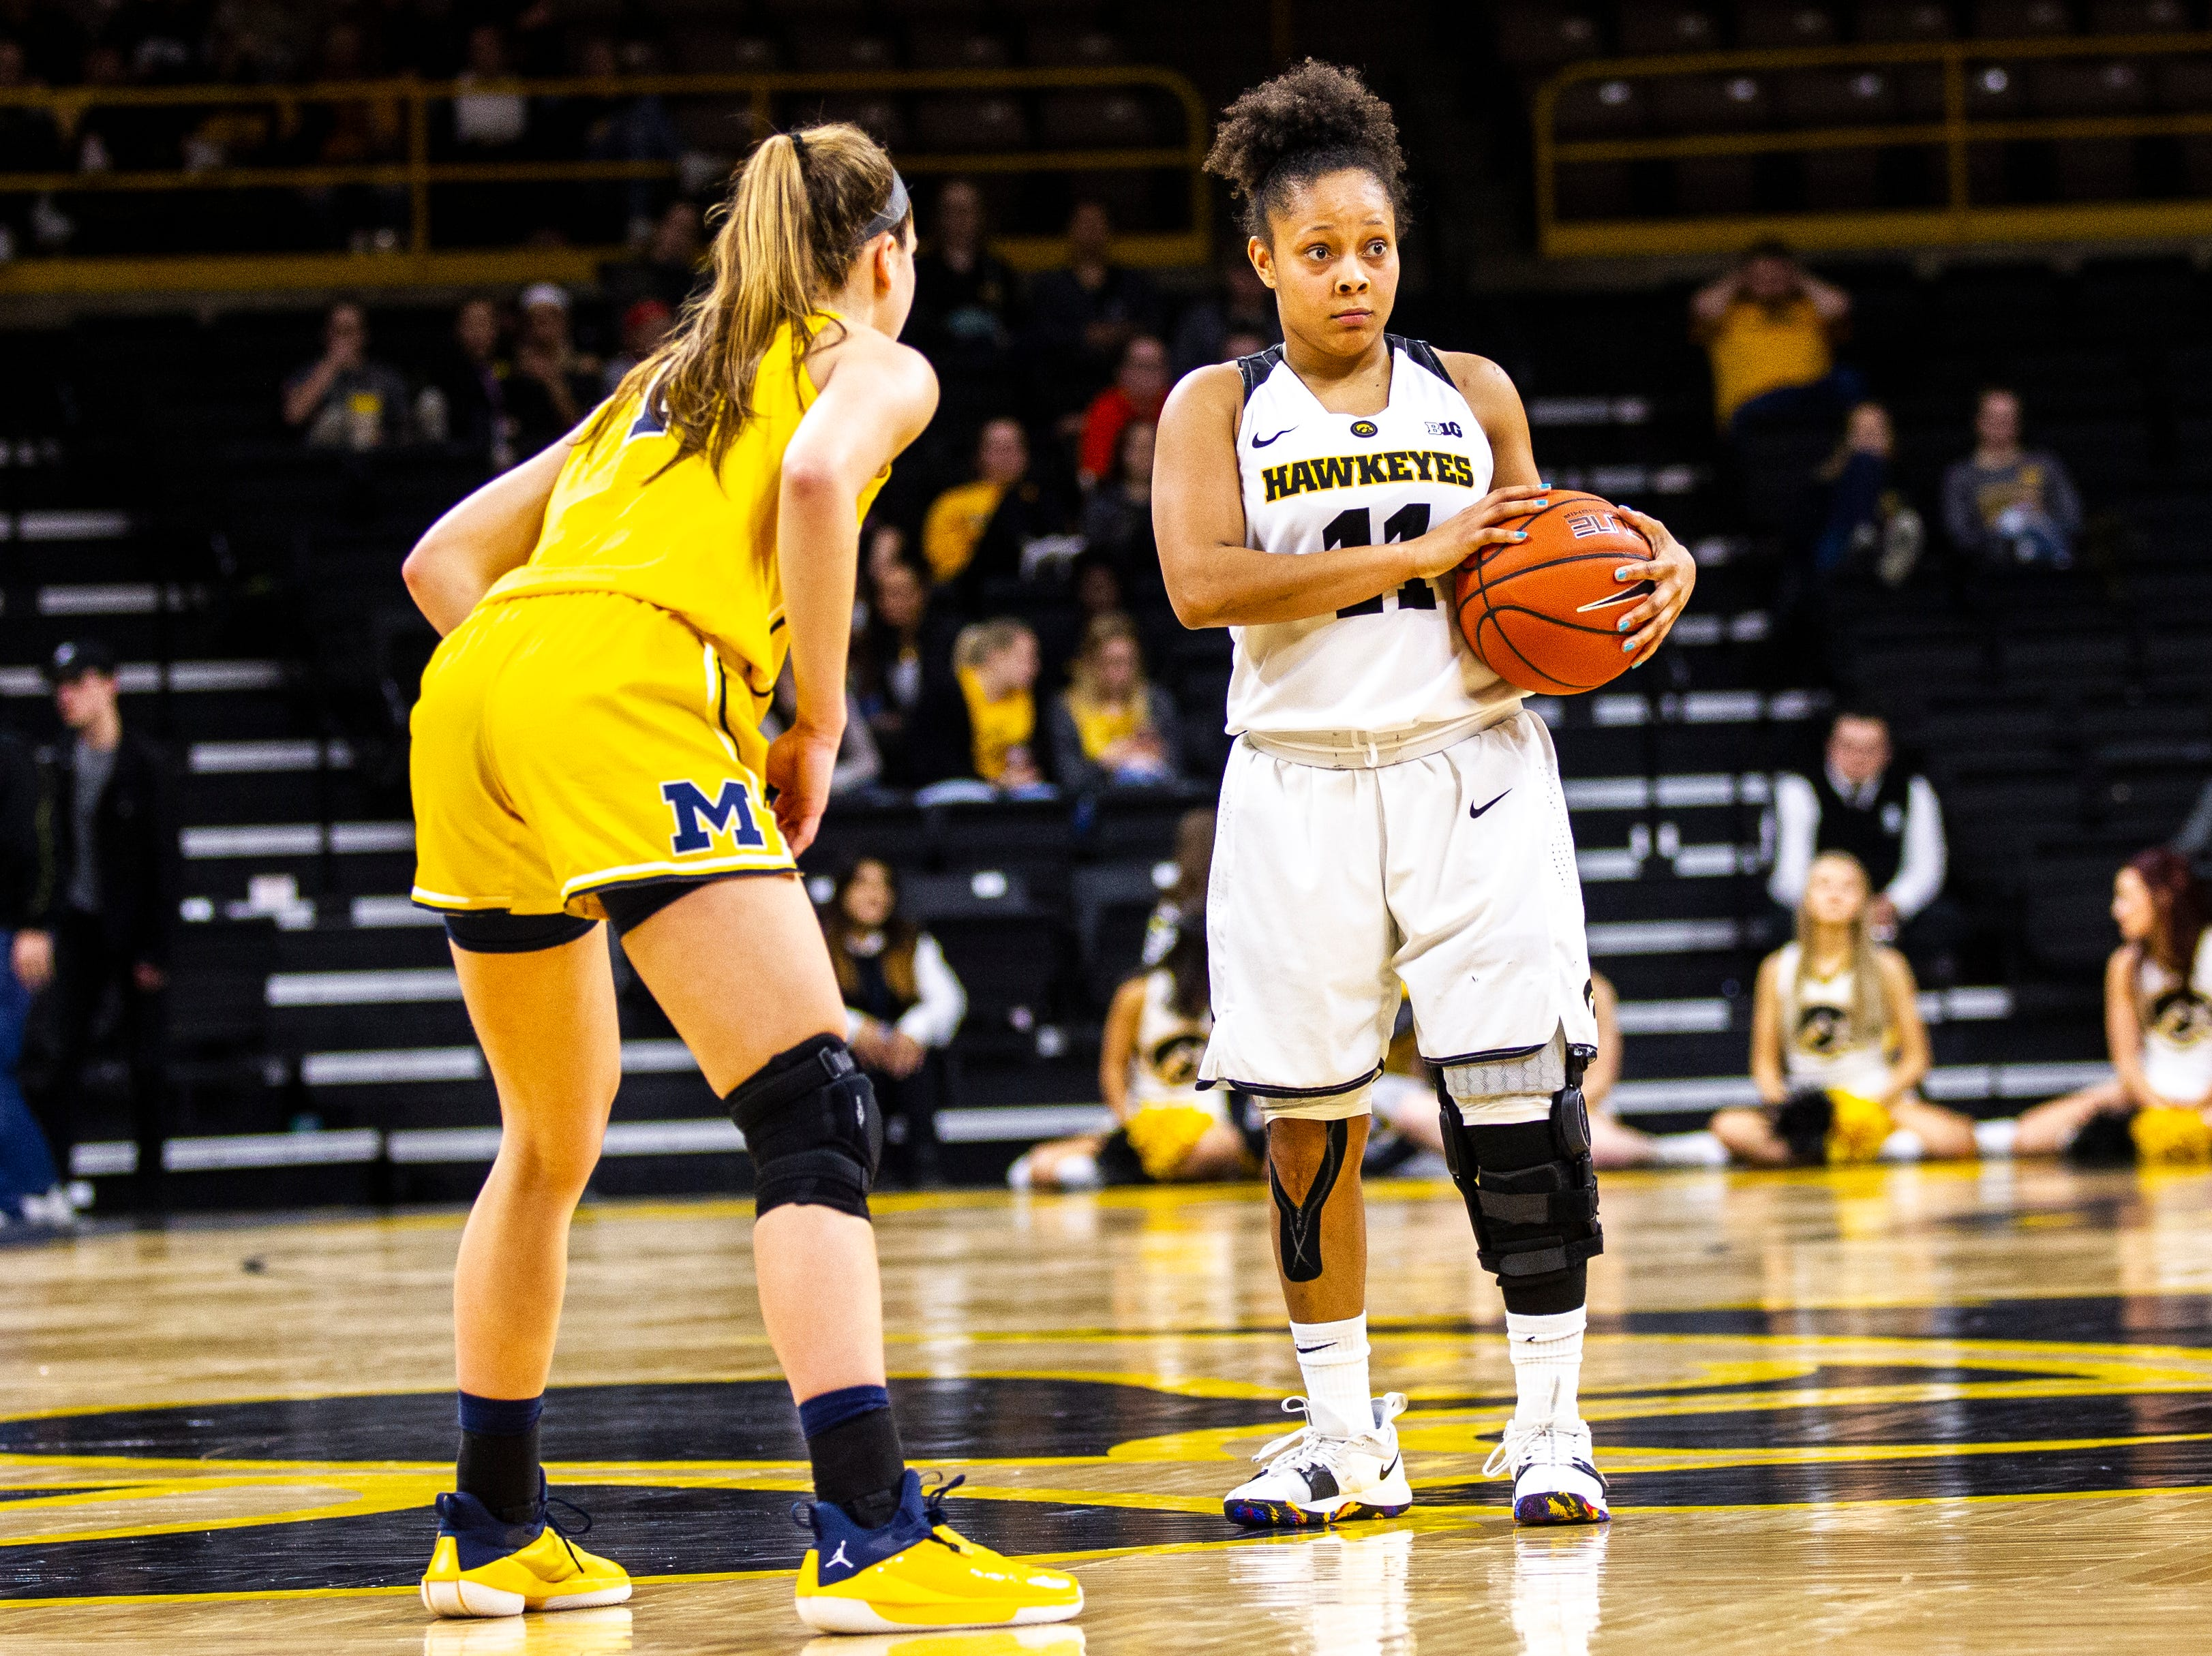 Iowa guard Tania Davis (11) looks to the bench while holding the ball during a NCAA Big Ten Conference women's basketball game on Thursday, Jan. 17, 2019, at Carver-Hawkeye Arena in Iowa City, Iowa.